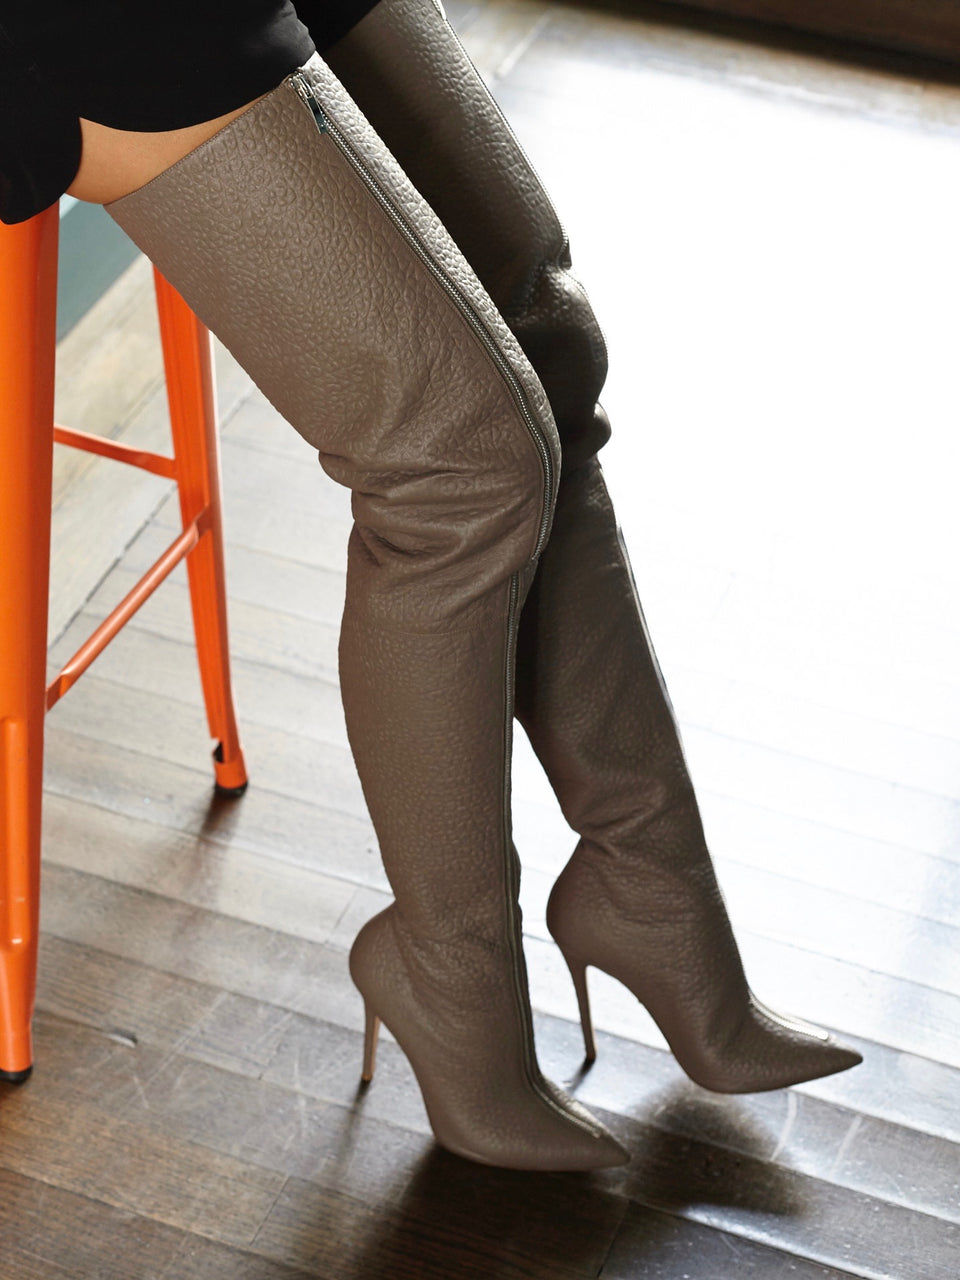 BLAIR TAUPE LEATHER THIGH-HIGH BOOT - Monika Chiang